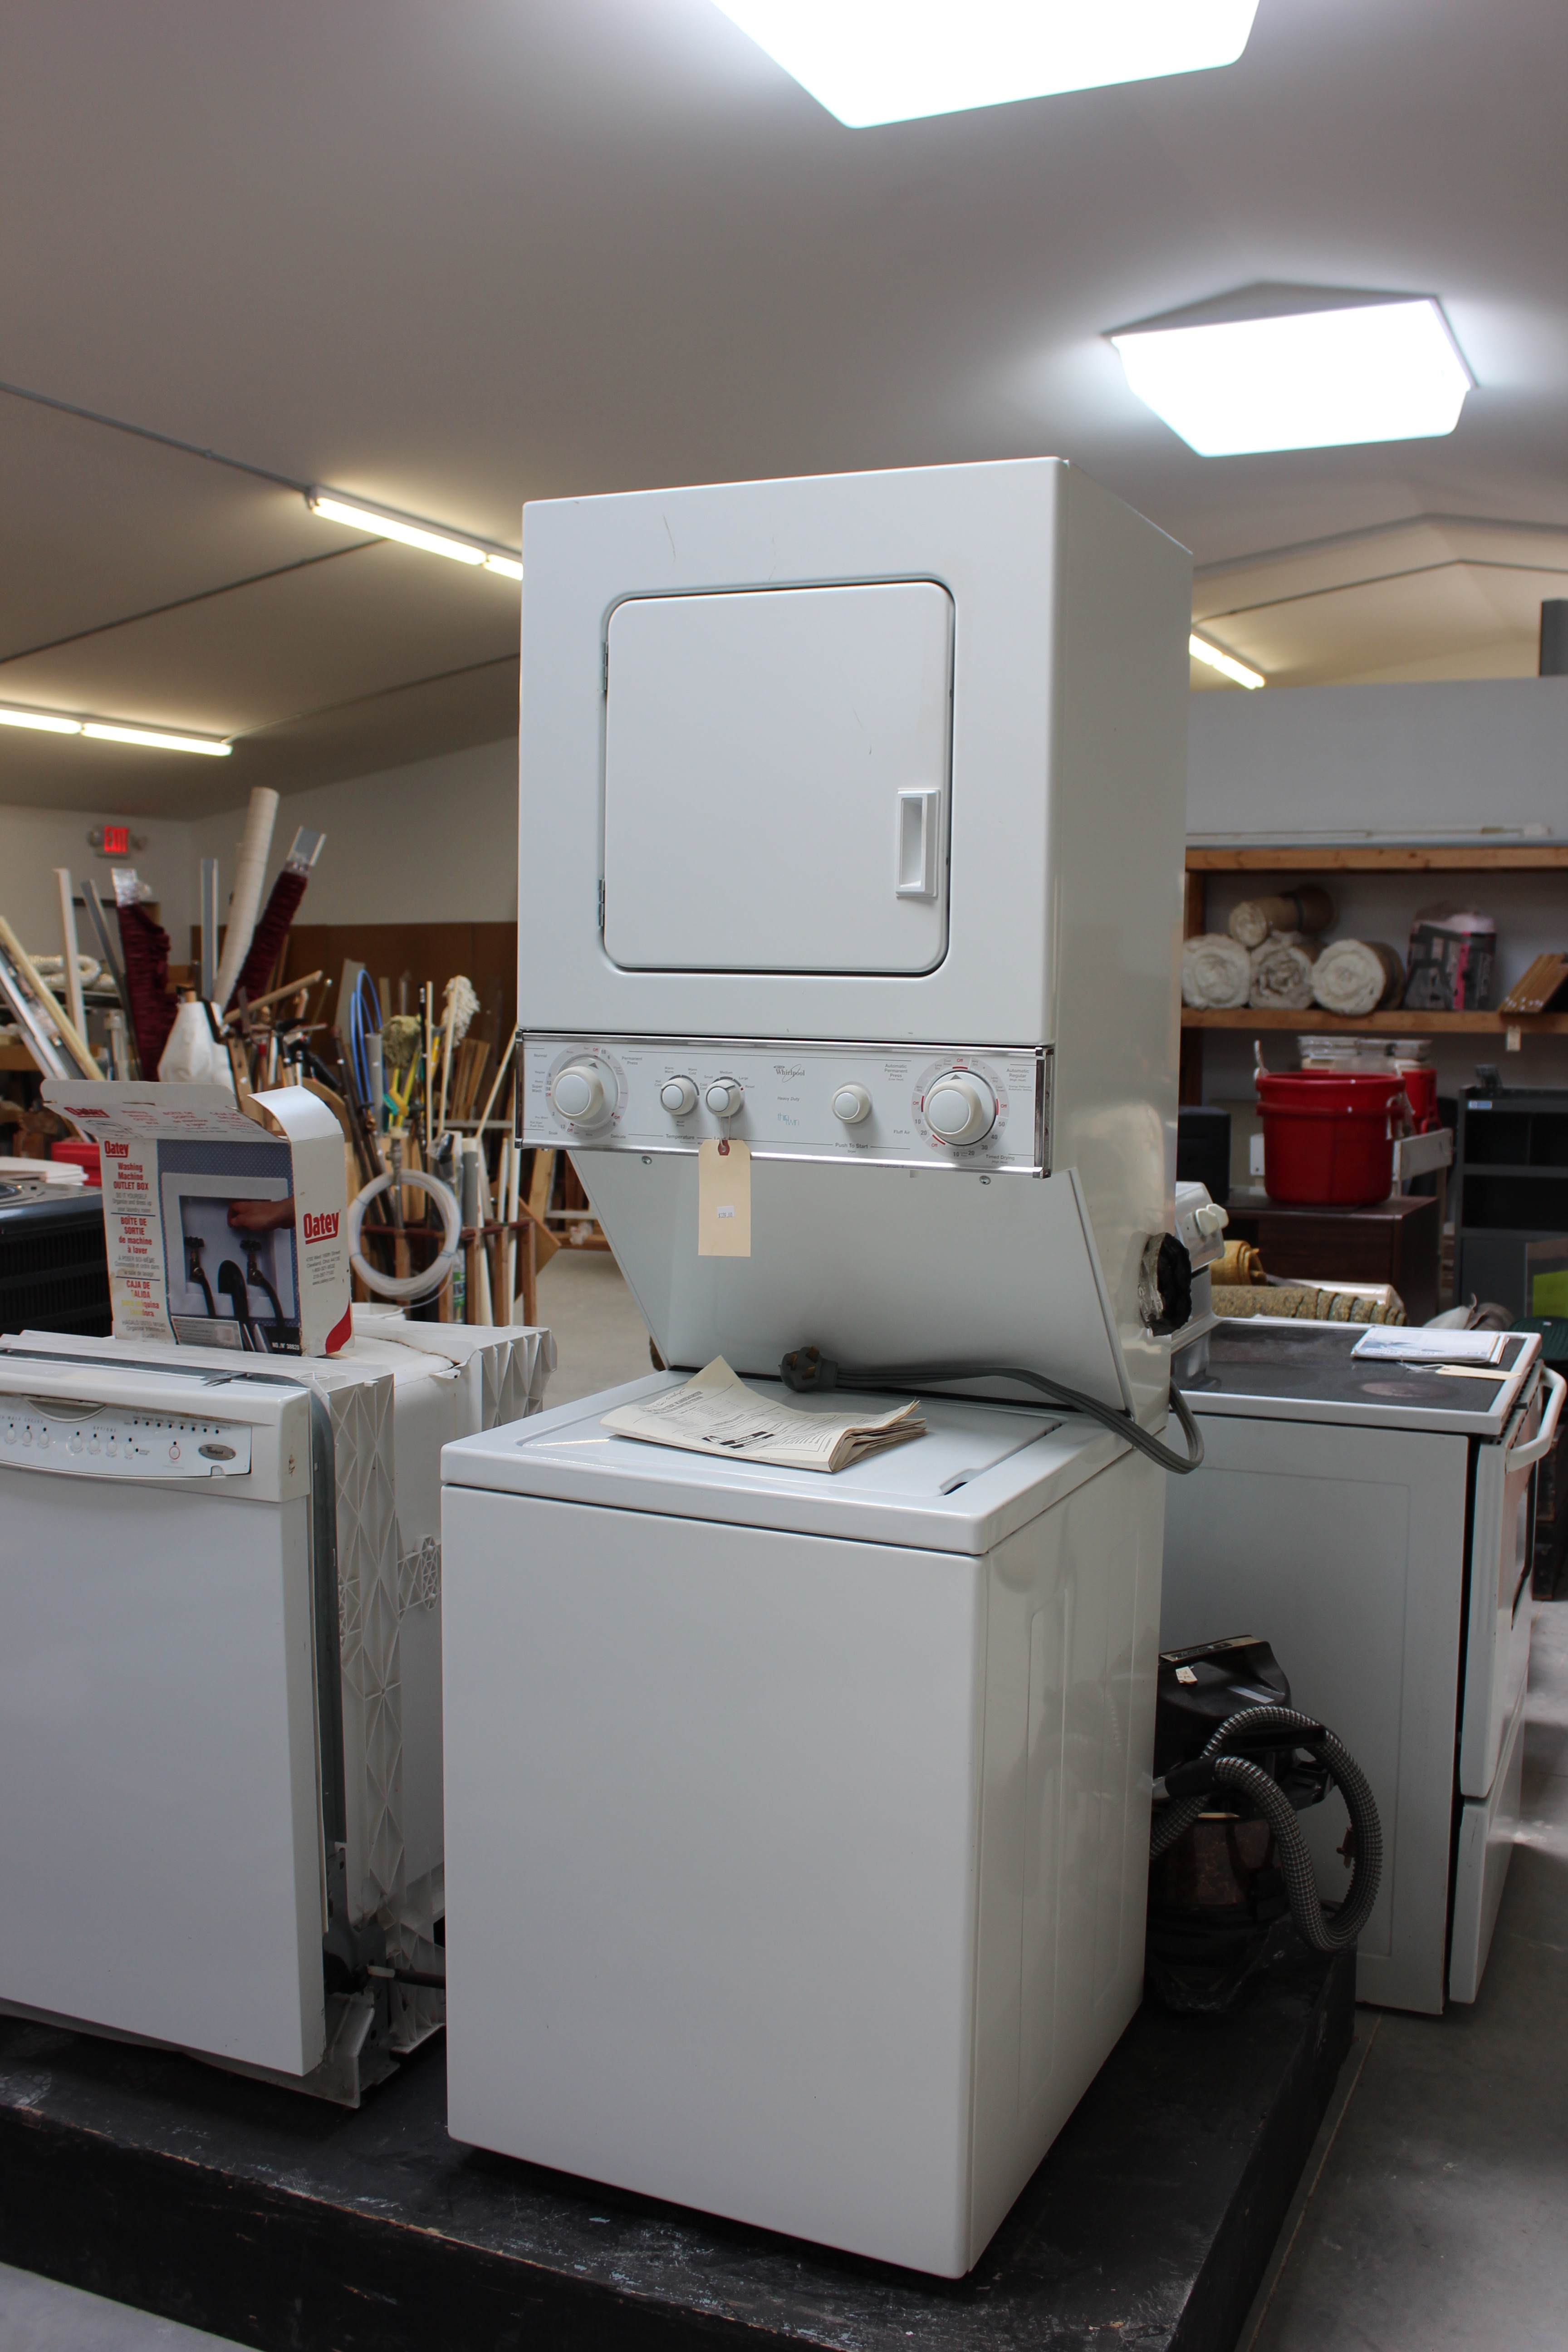 Like new appliances at fantastic prices